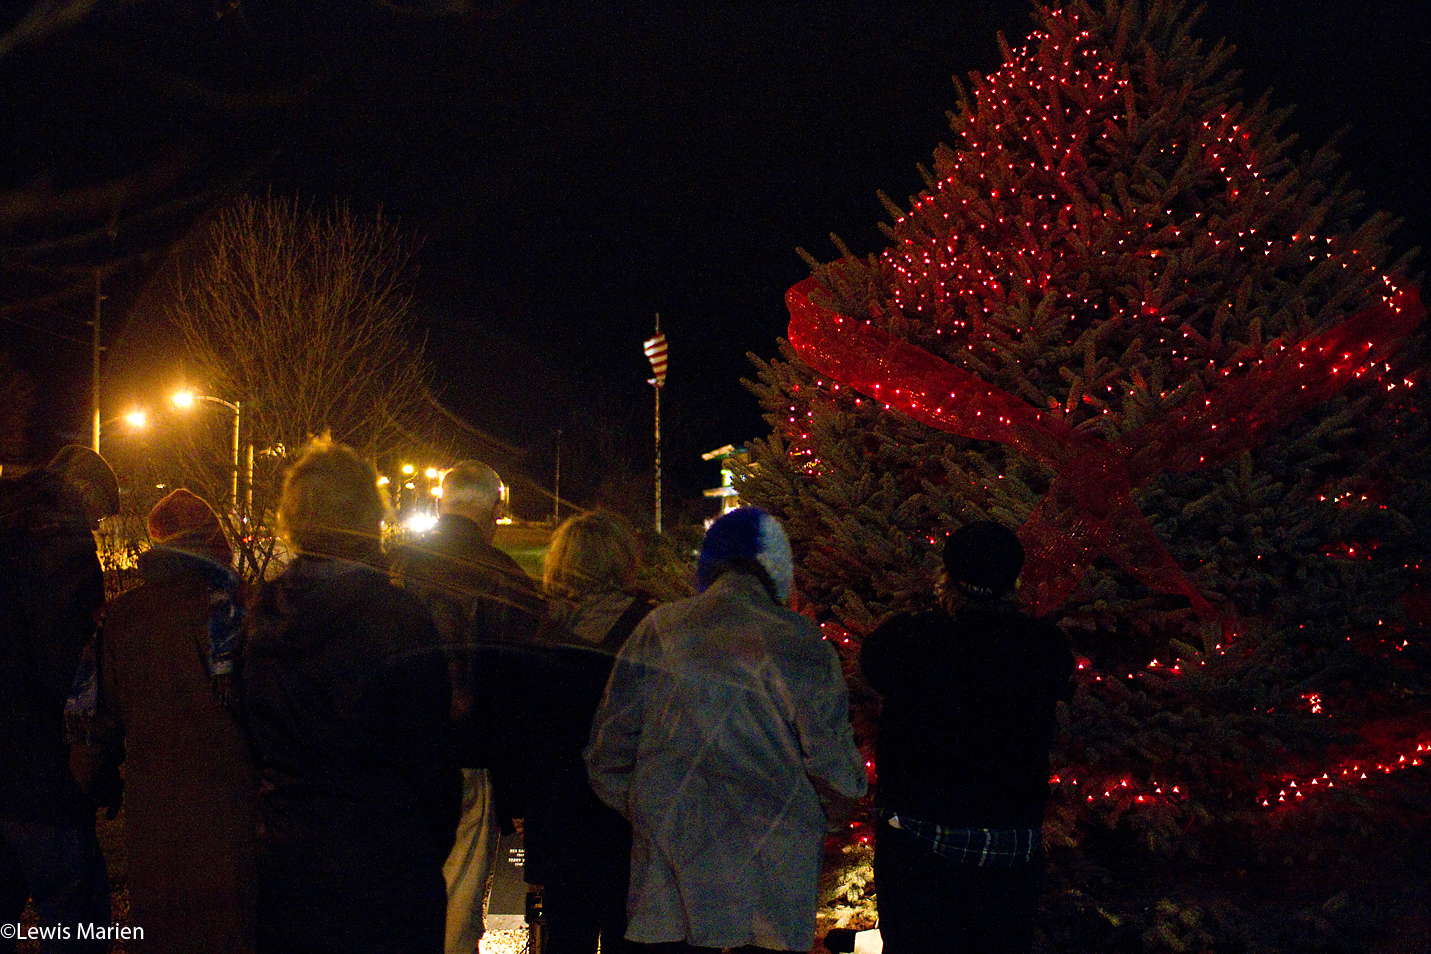 Attendees of the World AIDS Day Tree Lighting Ceremony stand in a moment of silence Dec. 1 as a tree at the Memorial Garden outside of the Knox County Health Department in Galesburg, Ill.,is illuminated with red lights. World AIDS Day is a day dedicated to heighten awareness of both HIV and AIDS, as well as to remember those whose lives have been touched by the disease.